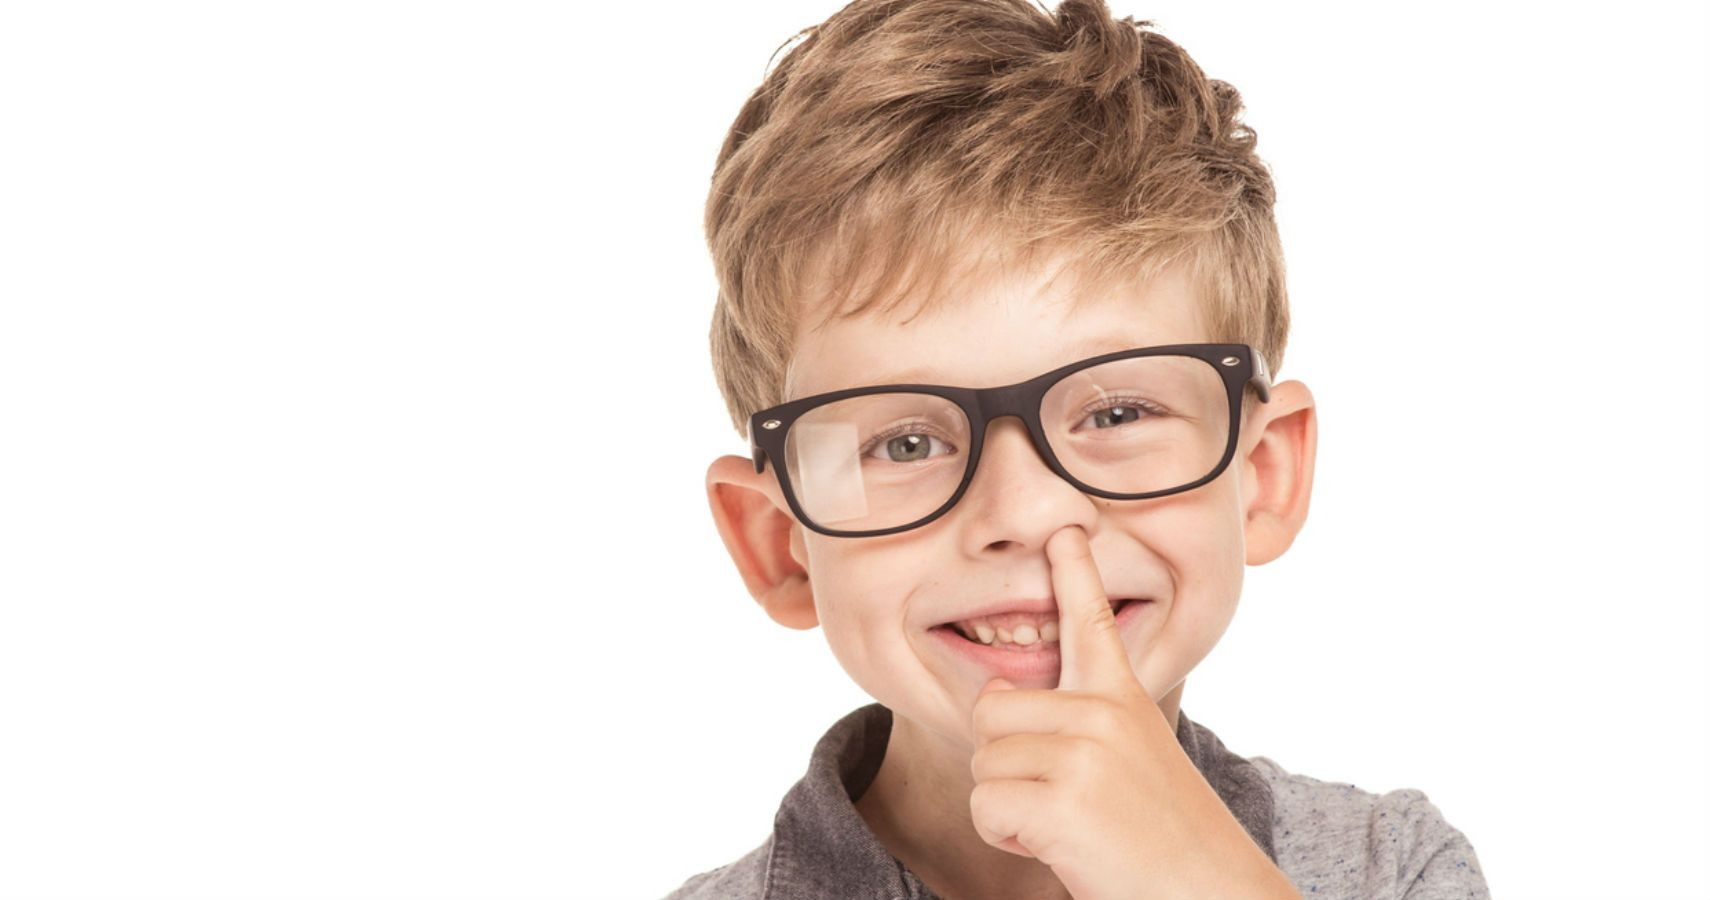 Nose Picking Kids Why It Happens And What To Do About It